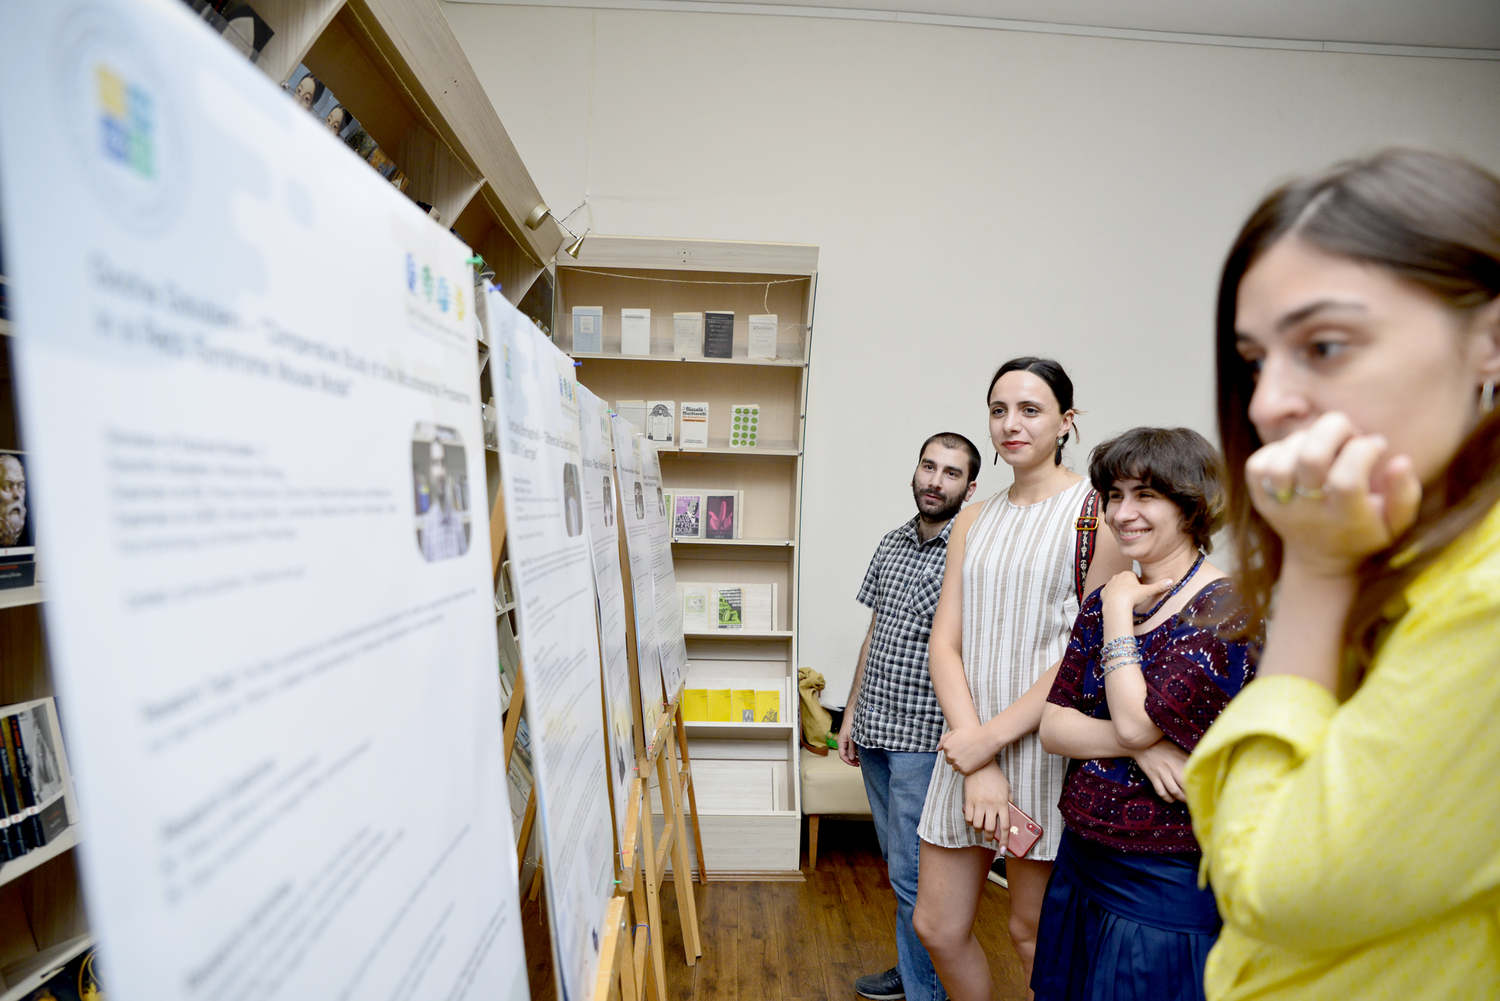 Presentation of doctoral projects at the launching event of the International Doctoral School at Ilia State University